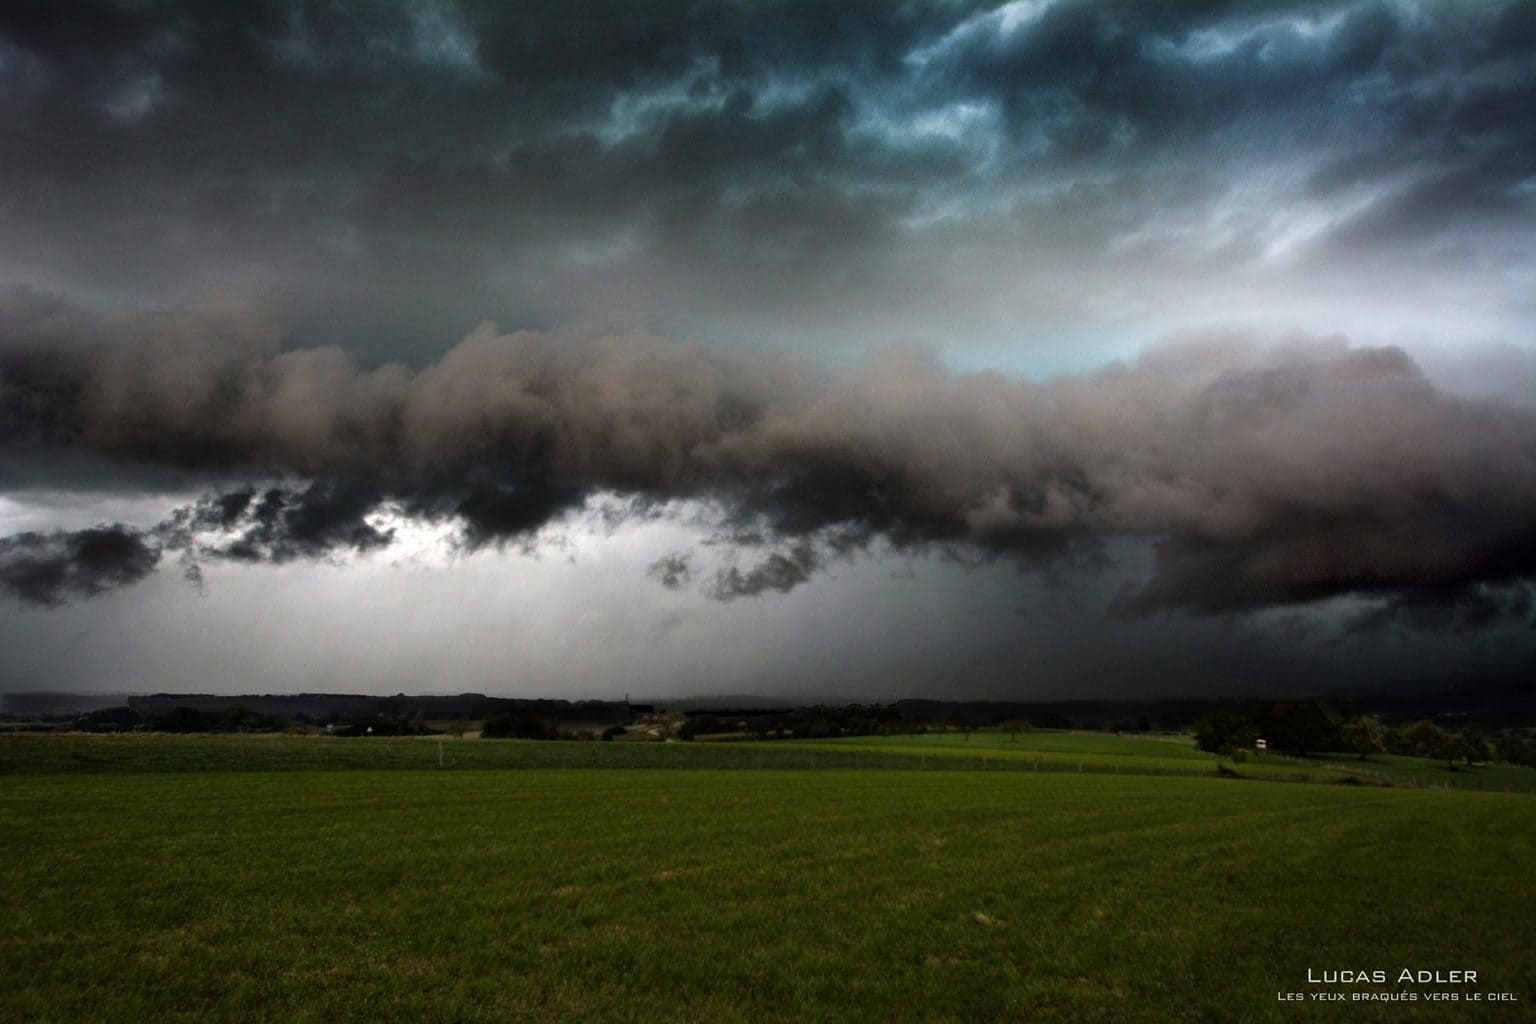 A quick photo before escaping a severe gust front in NE France last summer